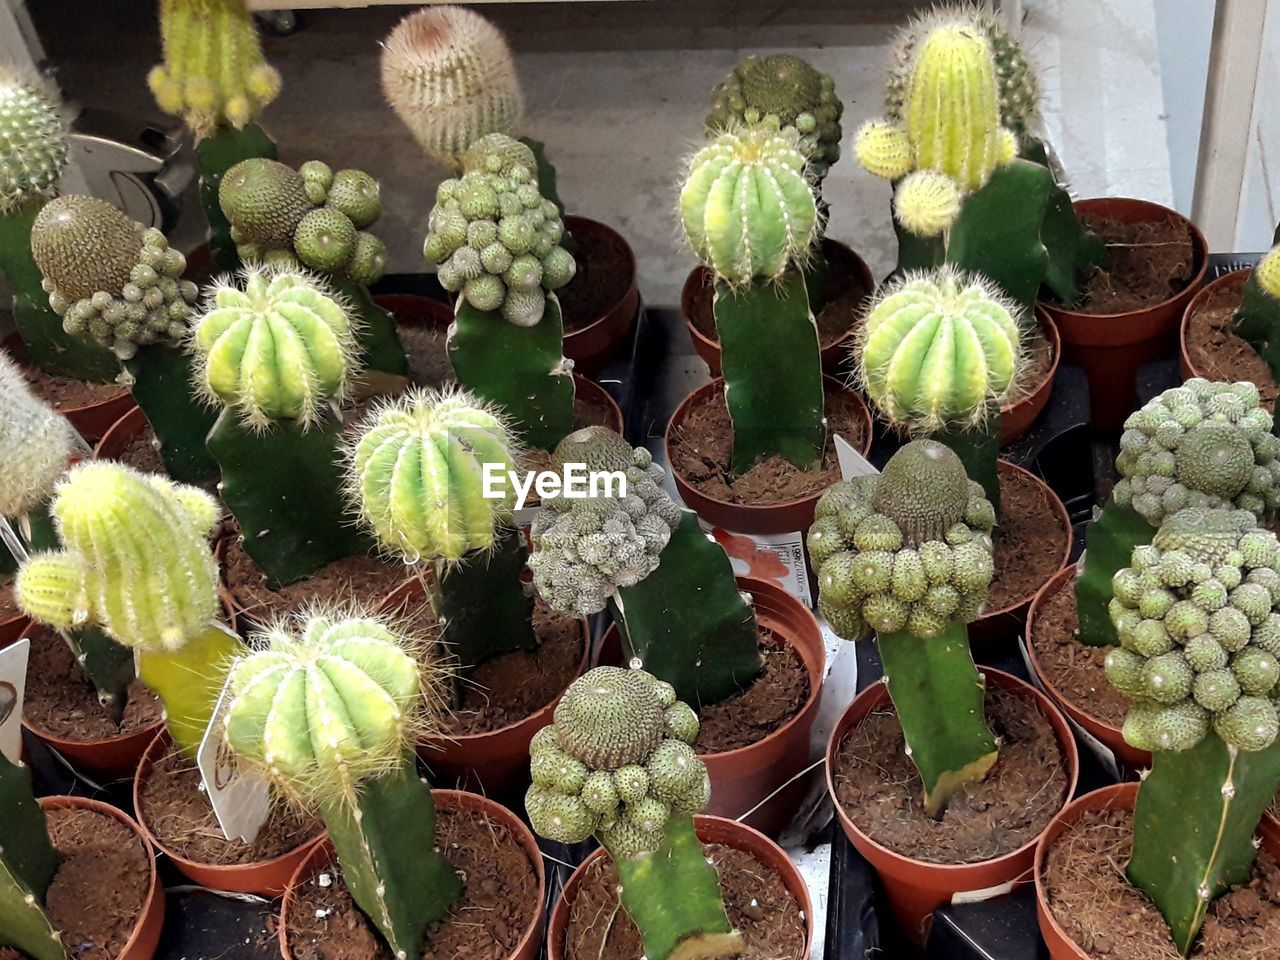 succulent plant, cactus, large group of objects, no people, green color, freshness, potted plant, for sale, abundance, container, retail, choice, day, market, variation, growth, plant, nature, high angle view, close-up, sale, retail display